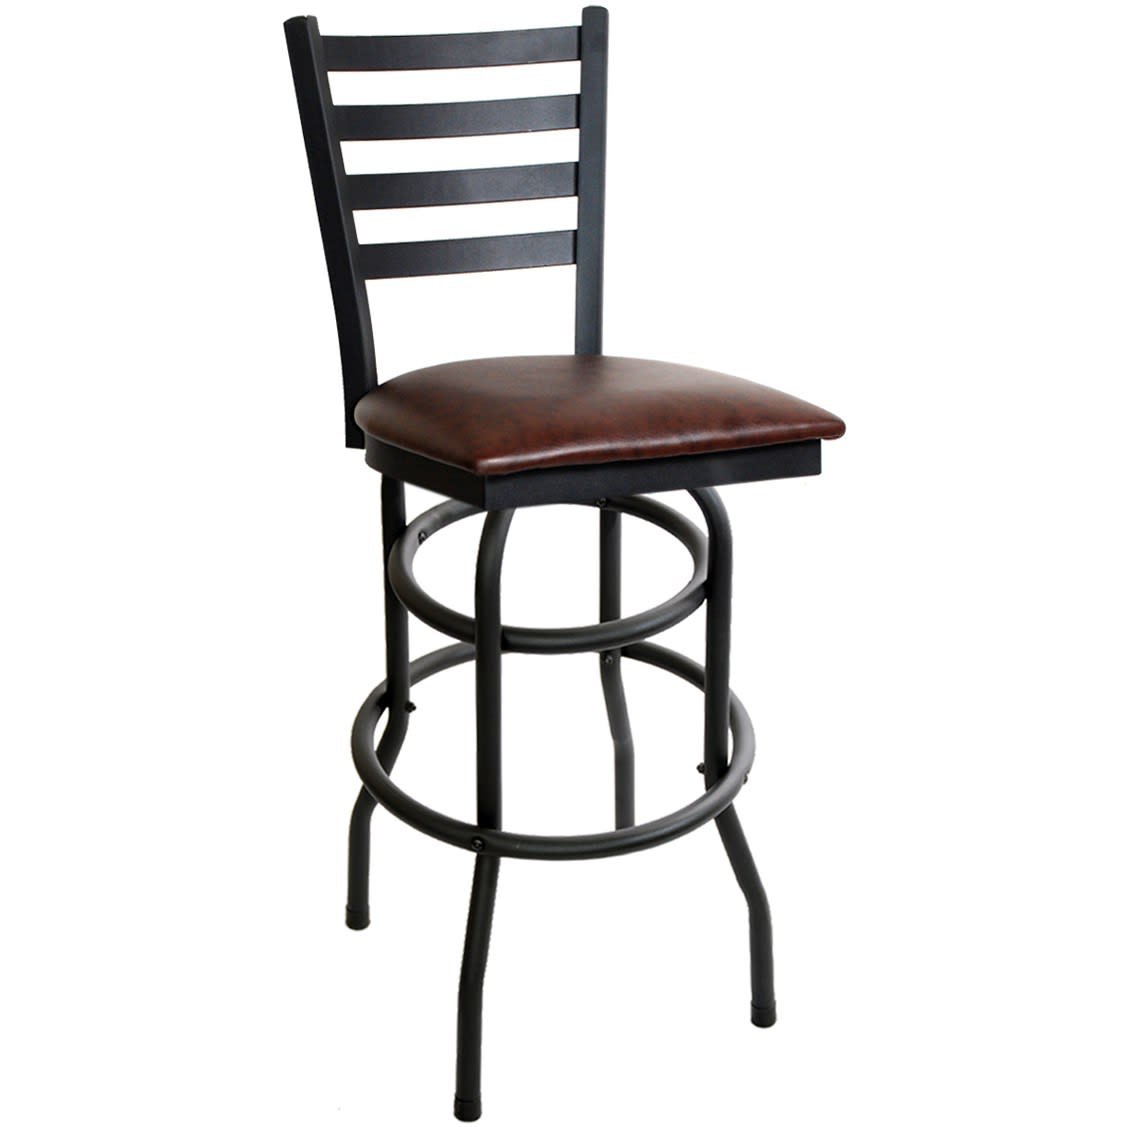 Ladder Back Double Ringed Swivel Bar Stool